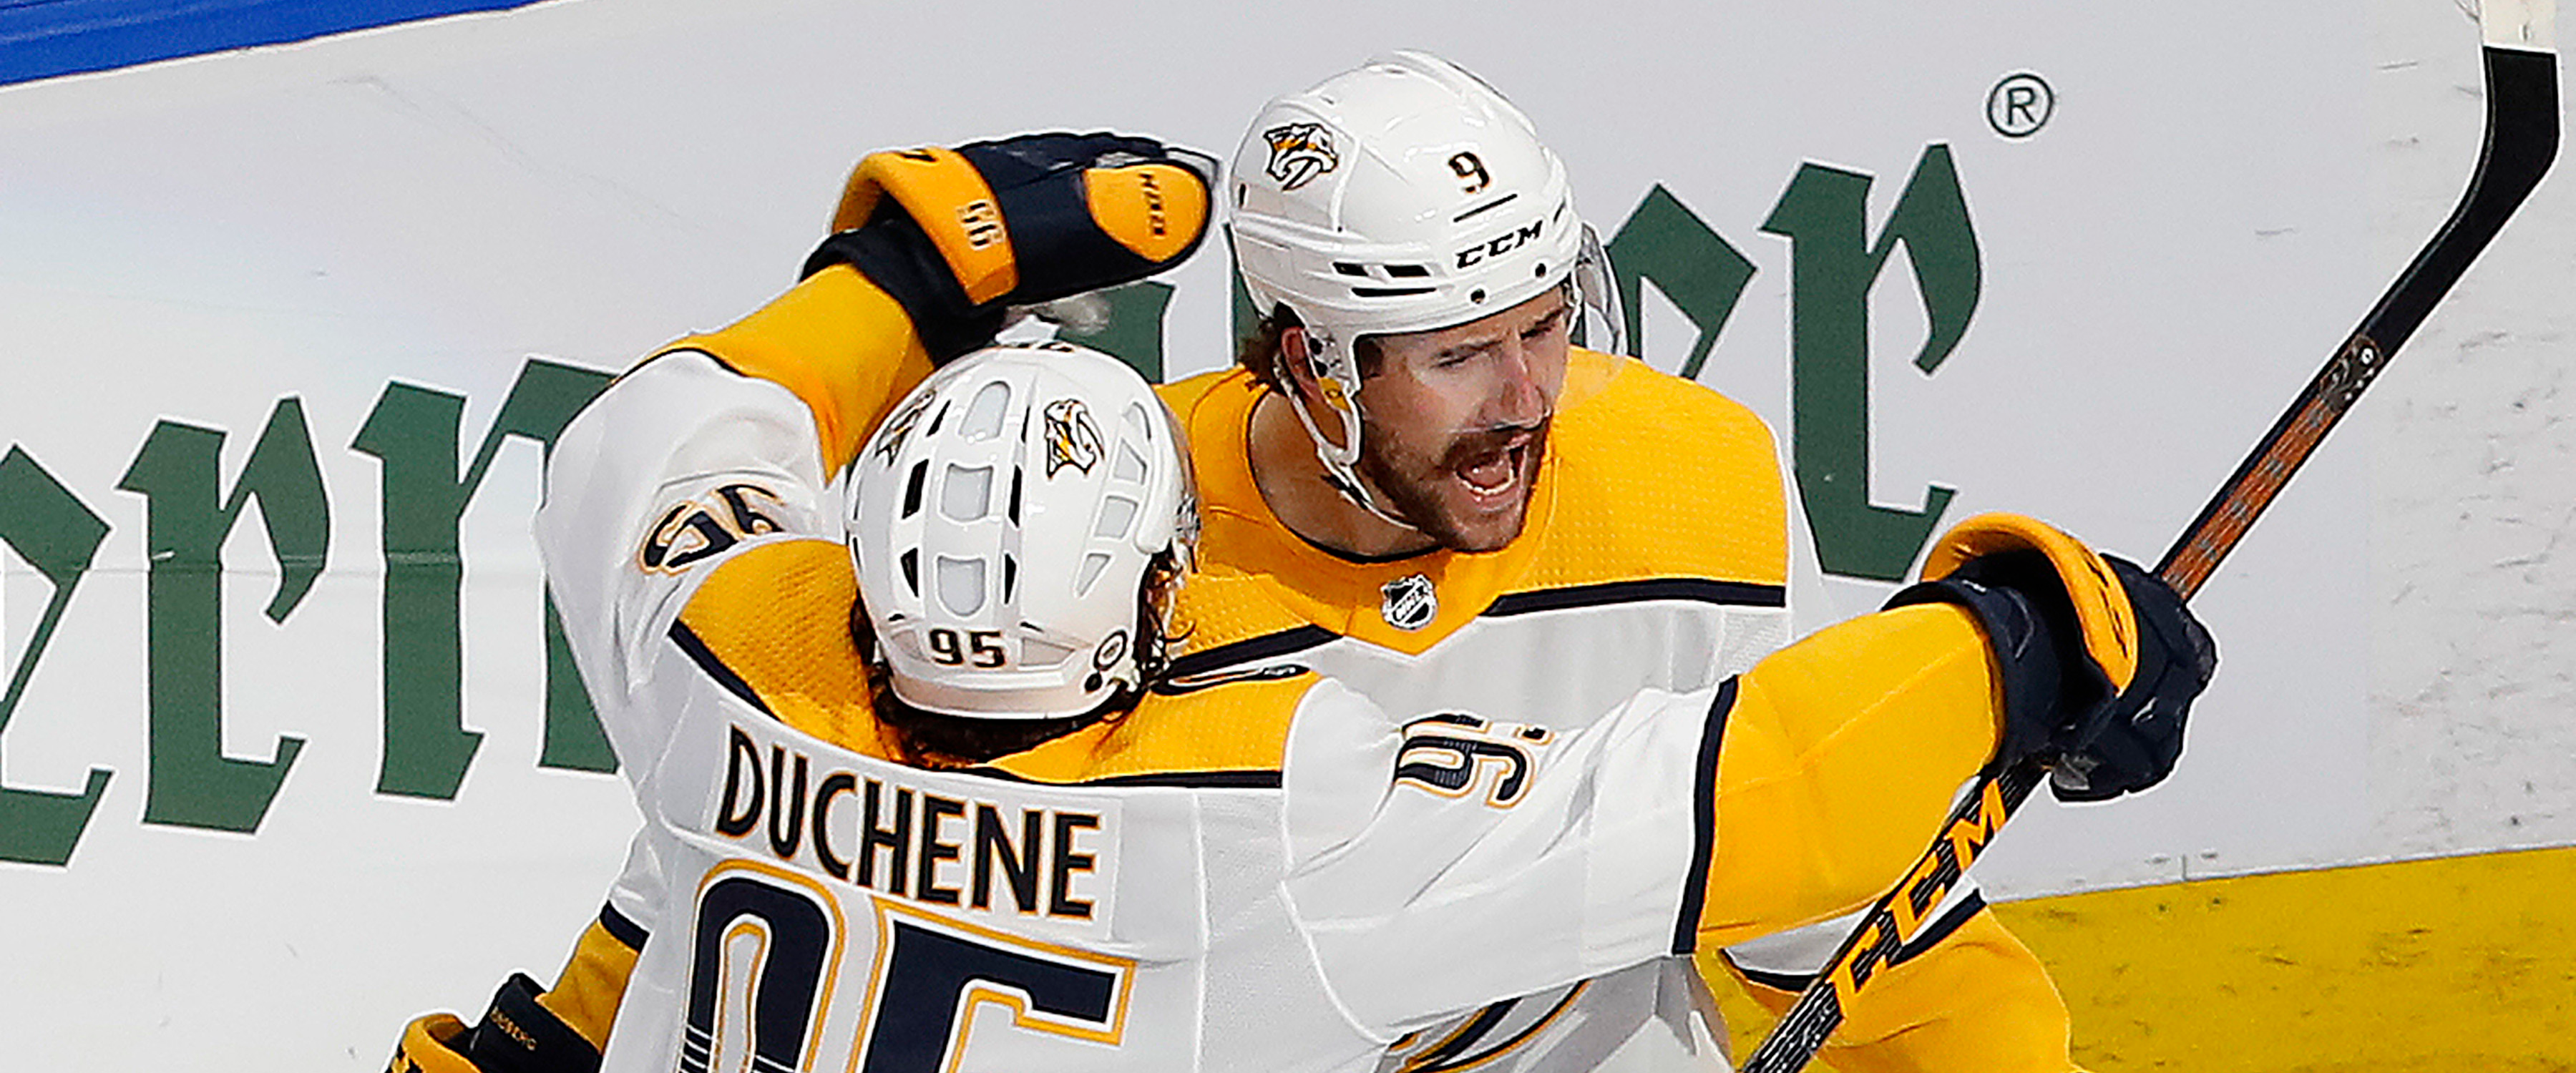 Nashville Predators: Getting to know the new Central division